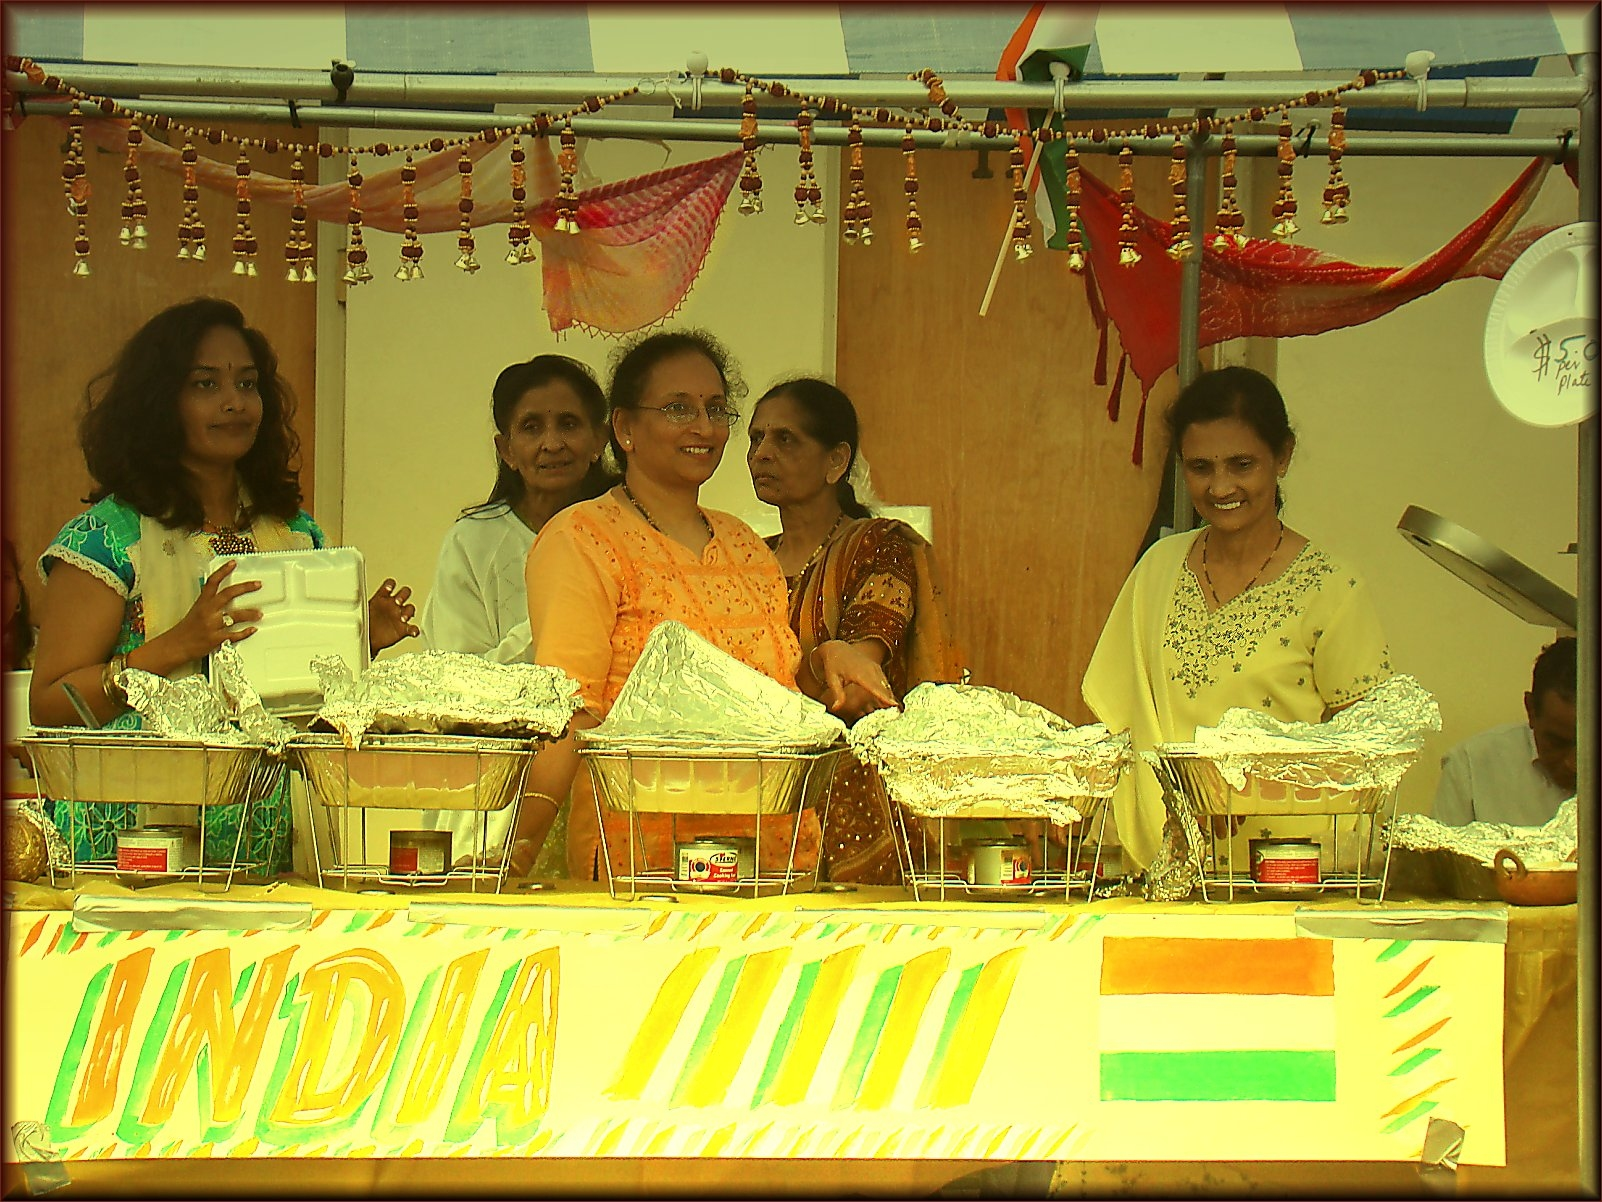 India Five at the Multicultural Festival in Historic Nacogdoches